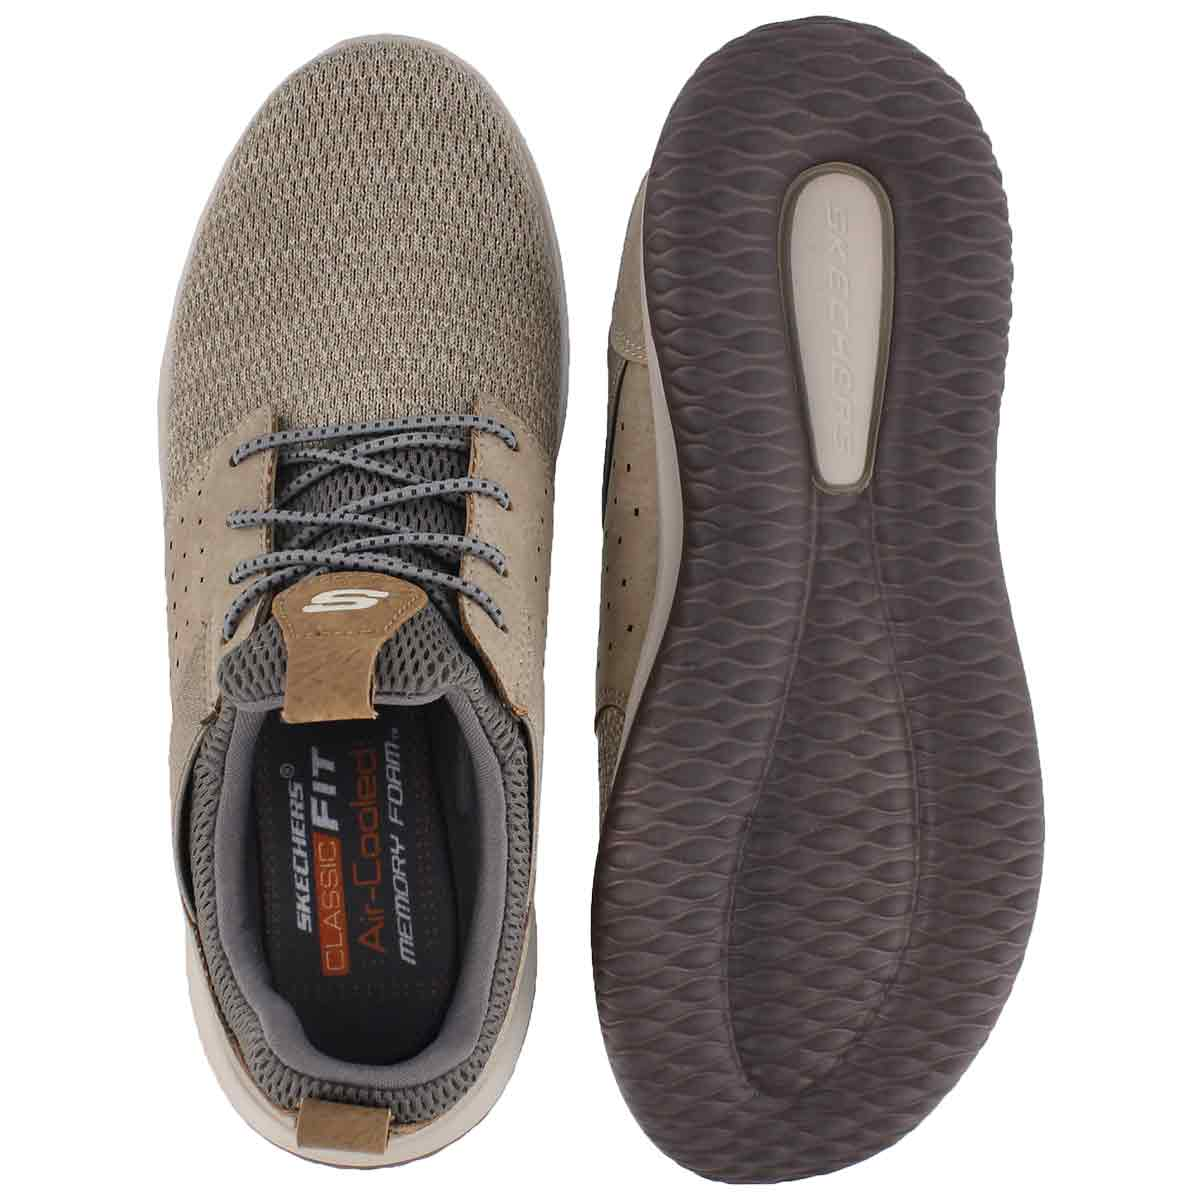 Mns Delson Camben taupe slip on snkr